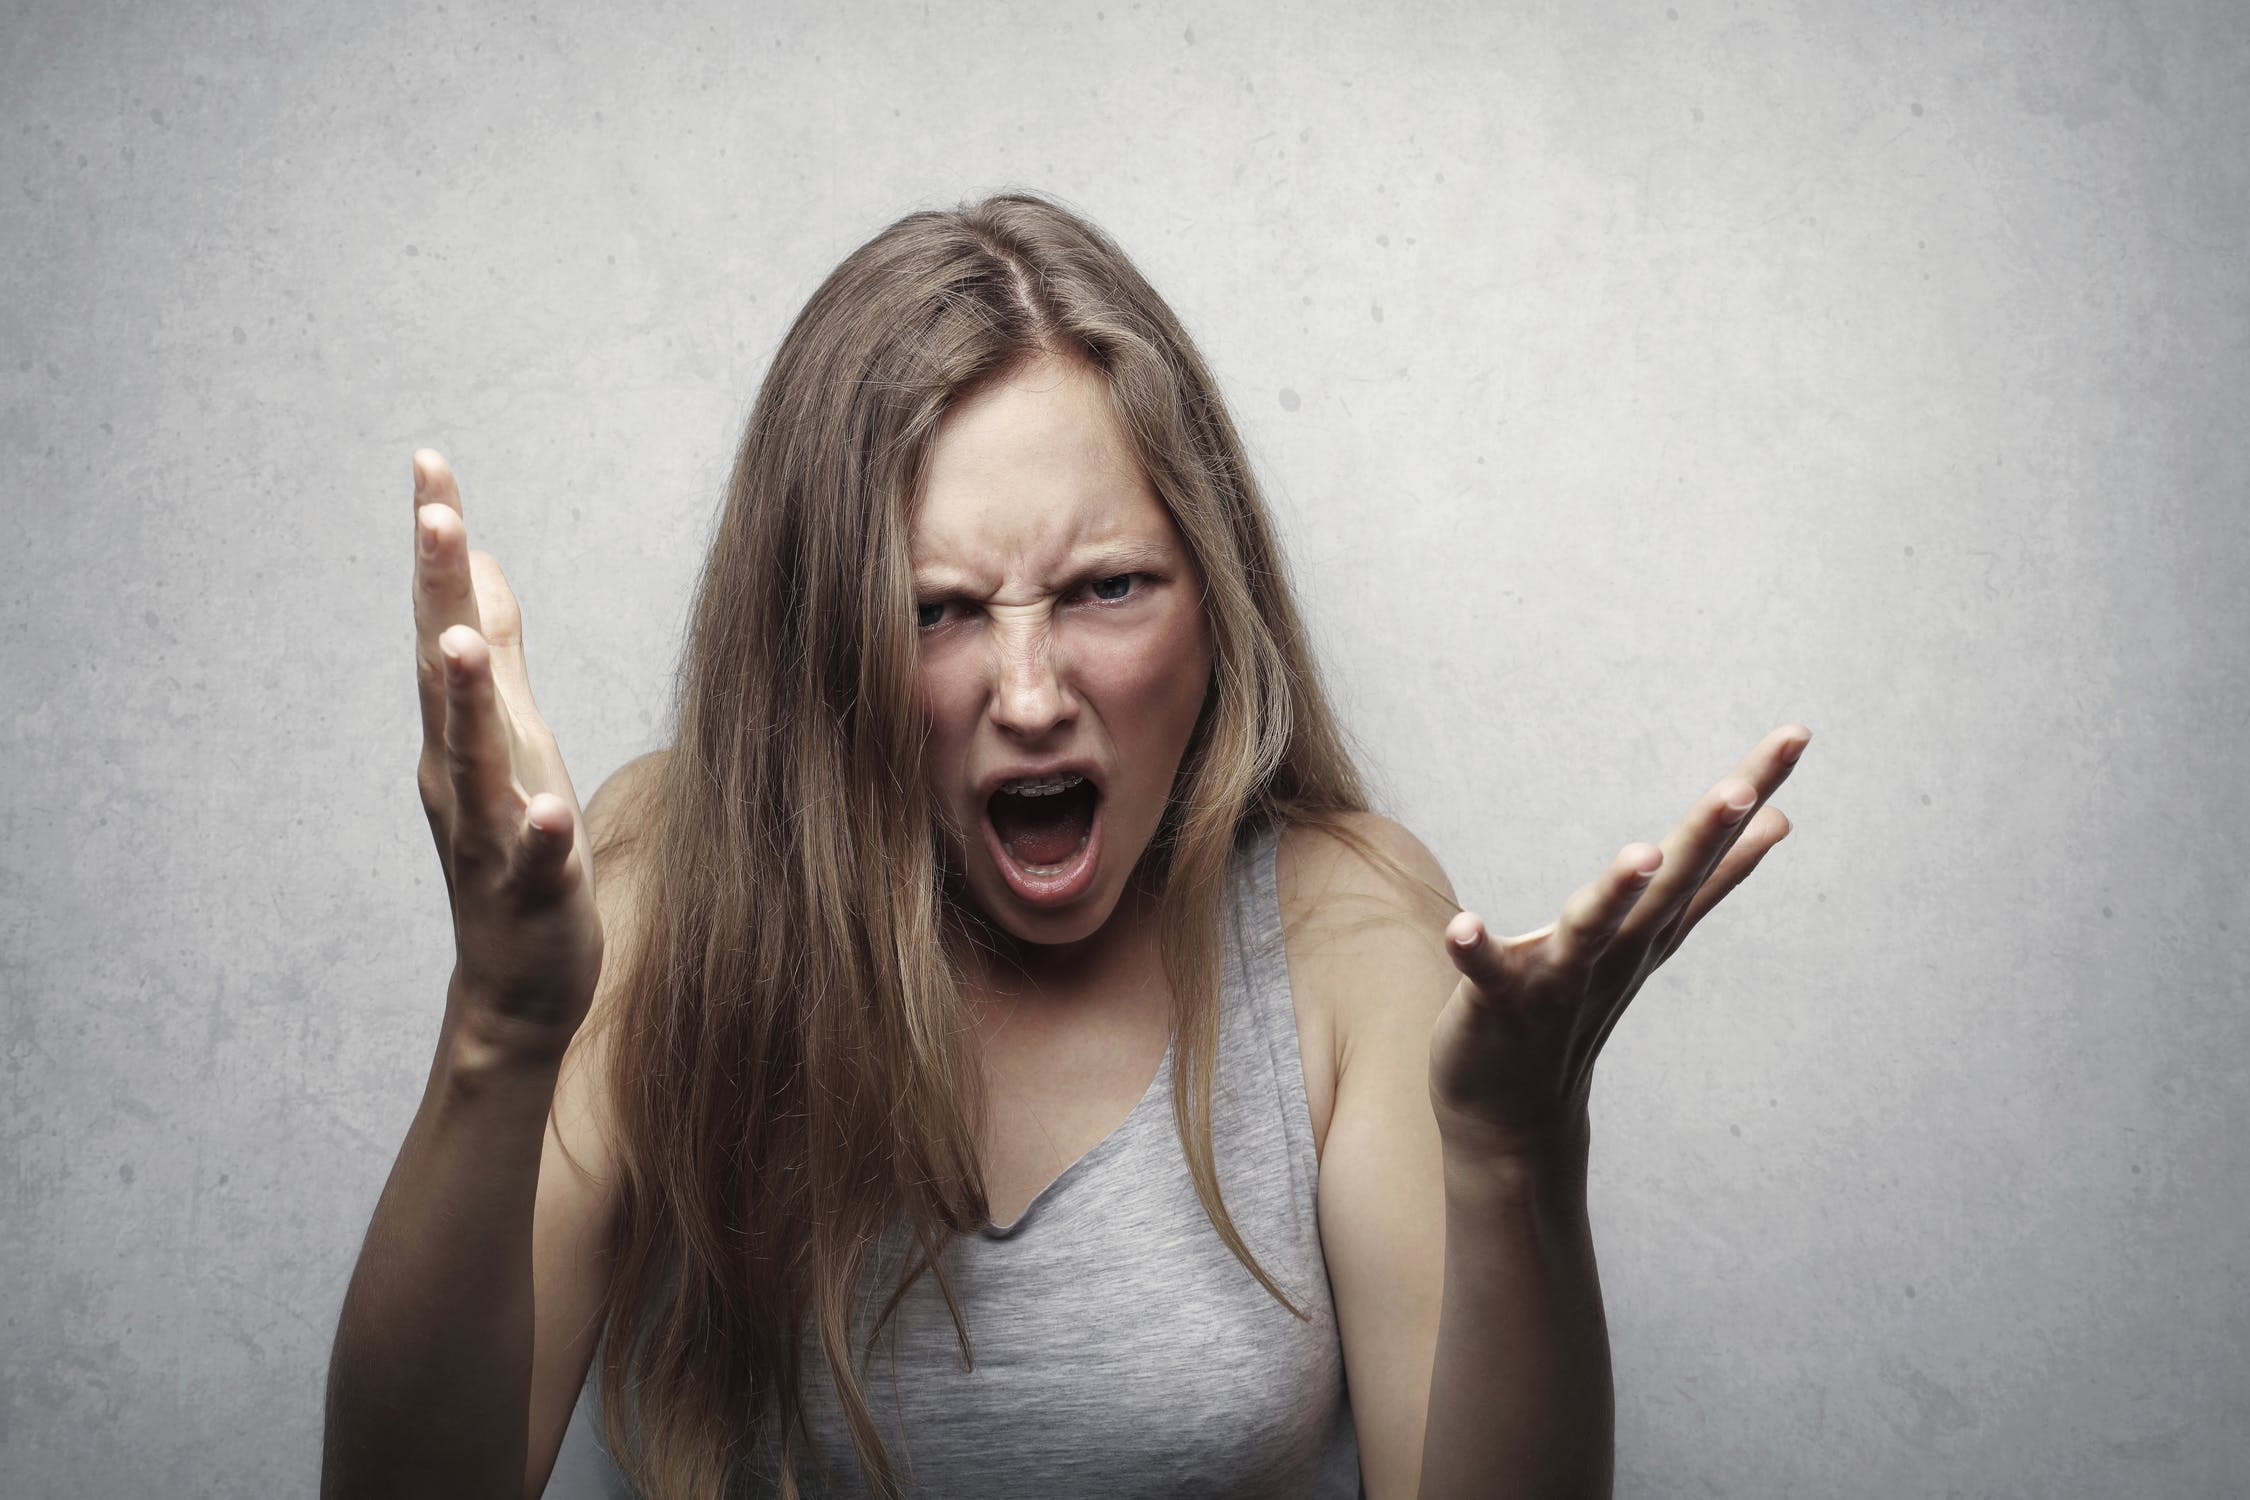 Angry woman | Source: Pexels